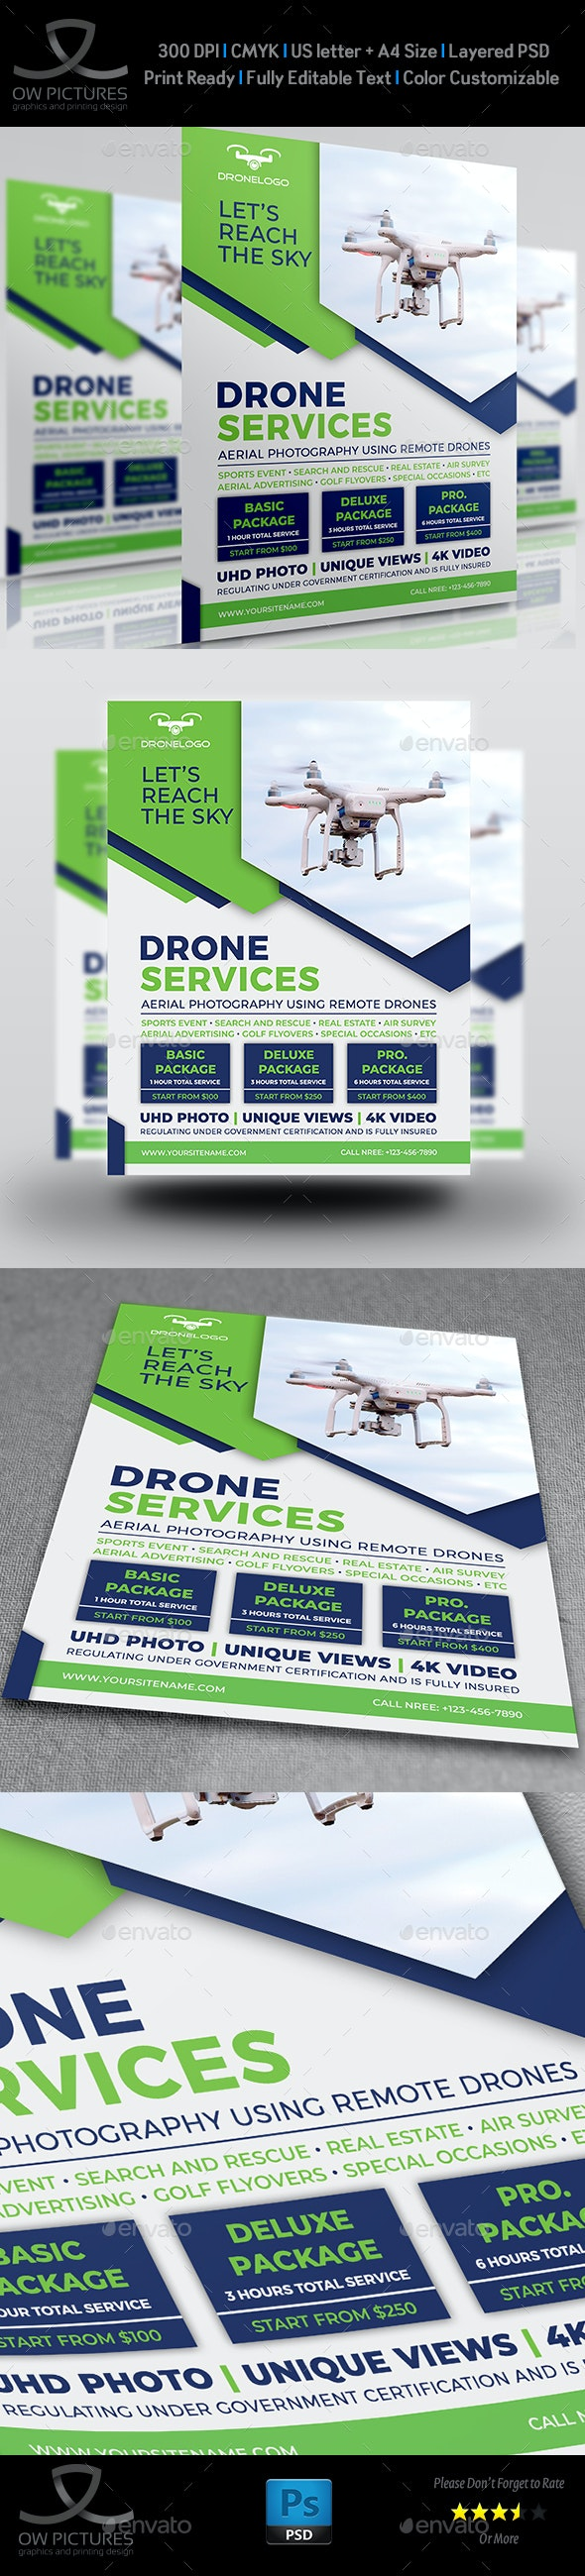 Drone Services Flyer Template - Flyers Print Templates